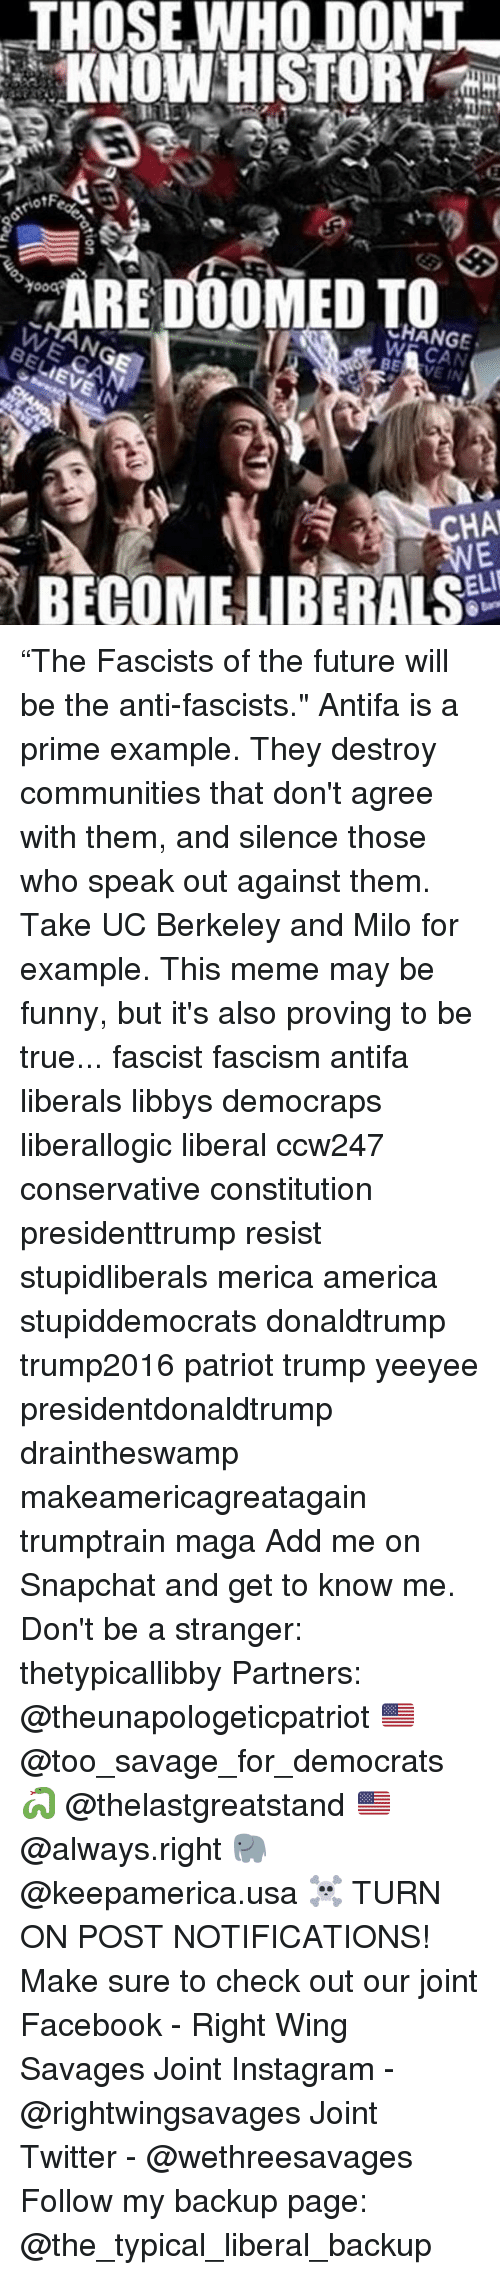 "UC Berkeley, Conservative, and Fascism: THOSE WHO DONT  KNOW HISTORY  ARE DOOMED TO  eRANGE  W  BELIEVE IN  WE CAN  ANG  HA  BECOME LIBERALS  gion ""The Fascists of the future will be the anti-fascists."" Antifa is a prime example. They destroy communities that don't agree with them, and silence those who speak out against them. Take UC Berkeley and Milo for example. This meme may be funny, but it's also proving to be true... fascist fascism antifa liberals libbys democraps liberallogic liberal ccw247 conservative constitution presidenttrump resist stupidliberals merica america stupiddemocrats donaldtrump trump2016 patriot trump yeeyee presidentdonaldtrump draintheswamp makeamericagreatagain trumptrain maga Add me on Snapchat and get to know me. Don't be a stranger: thetypicallibby Partners: @theunapologeticpatriot 🇺🇸 @too_savage_for_democrats 🐍 @thelastgreatstand 🇺🇸 @always.right 🐘 @keepamerica.usa ☠️ TURN ON POST NOTIFICATIONS! Make sure to check out our joint Facebook - Right Wing Savages Joint Instagram - @rightwingsavages Joint Twitter - @wethreesavages Follow my backup page: @the_typical_liberal_backup"